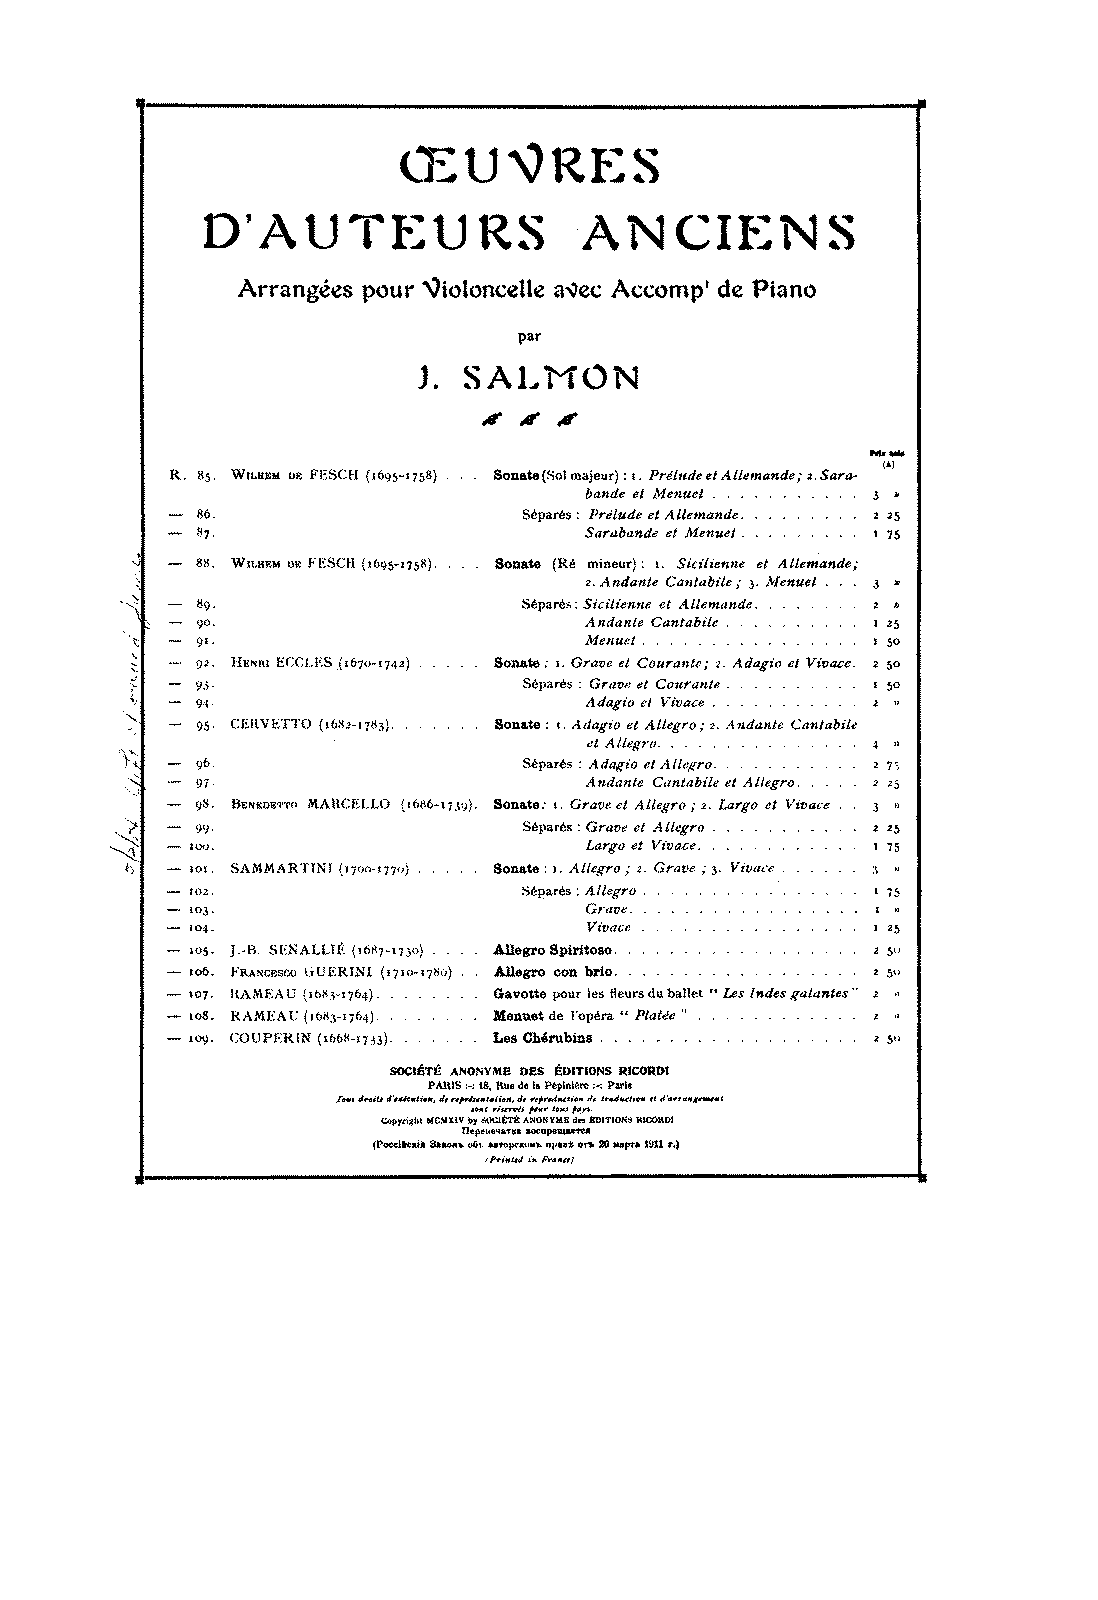 PMLP137190-deFesch - Andante cantabile for Cello and Piano (Salmon) score.pdf